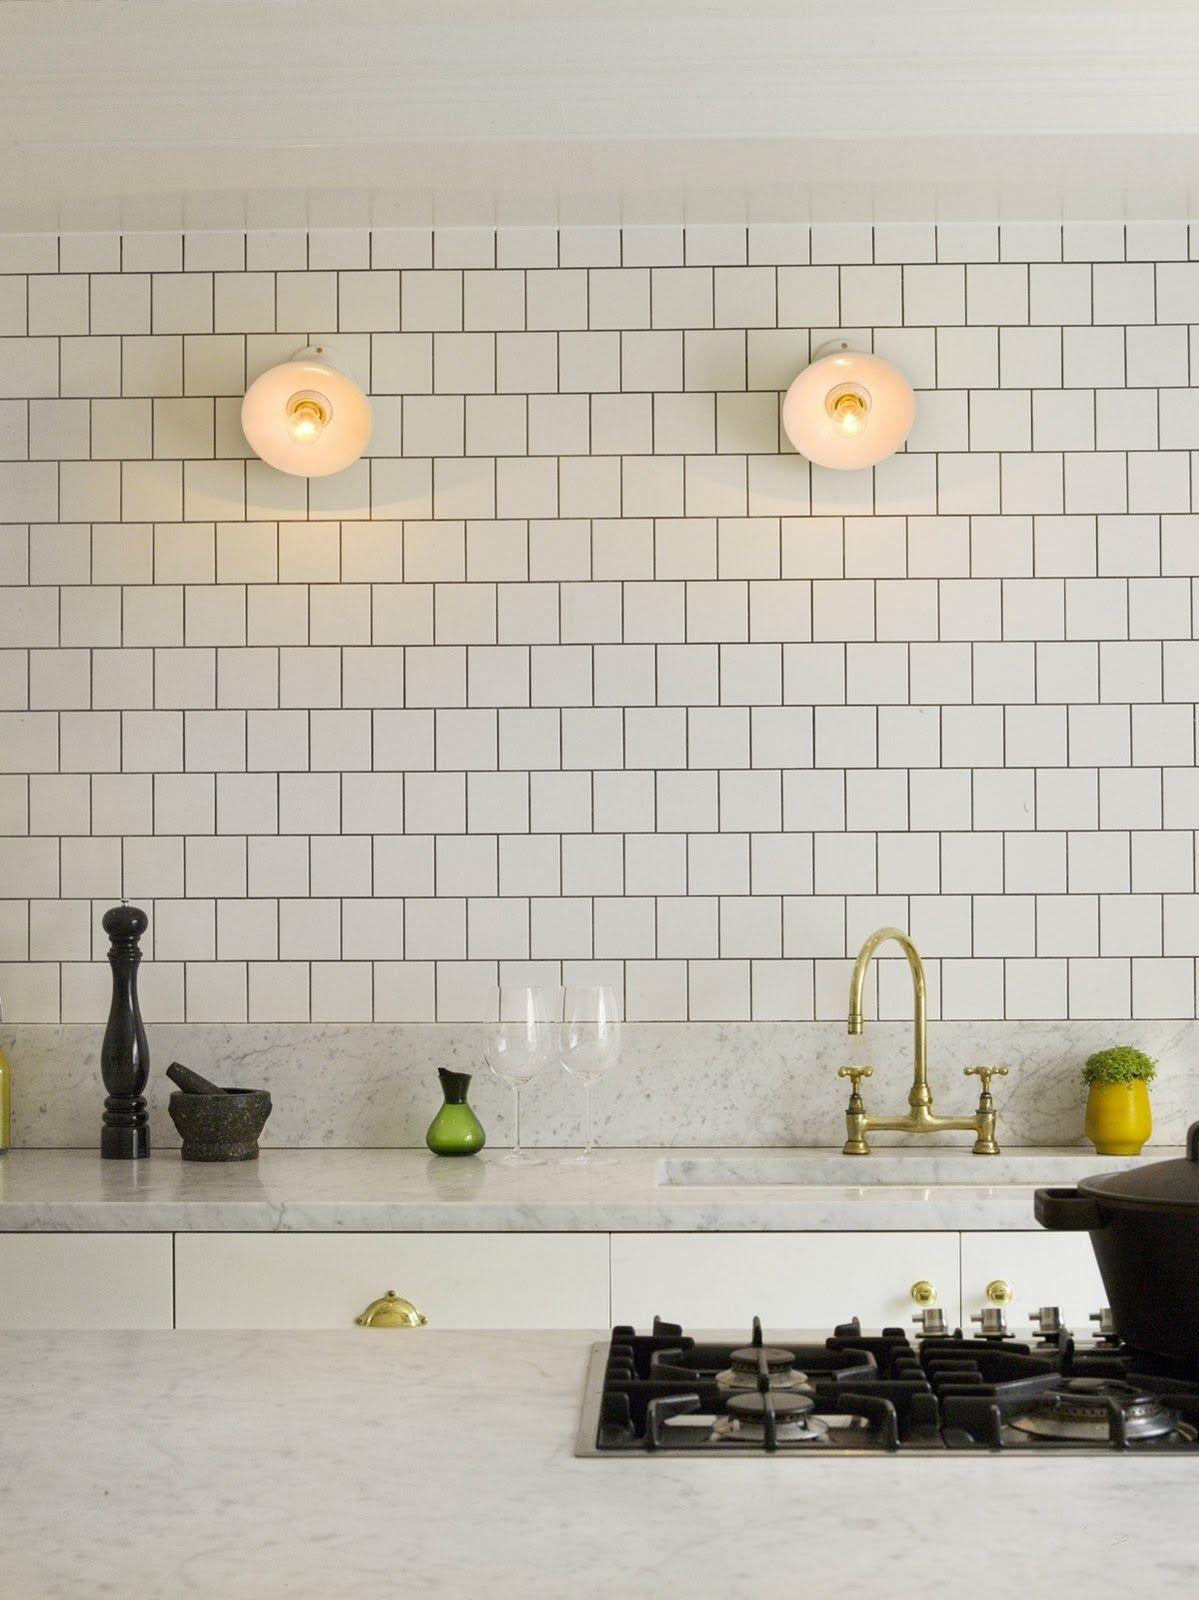 10 Things Nobody Tells You About Subway Tile